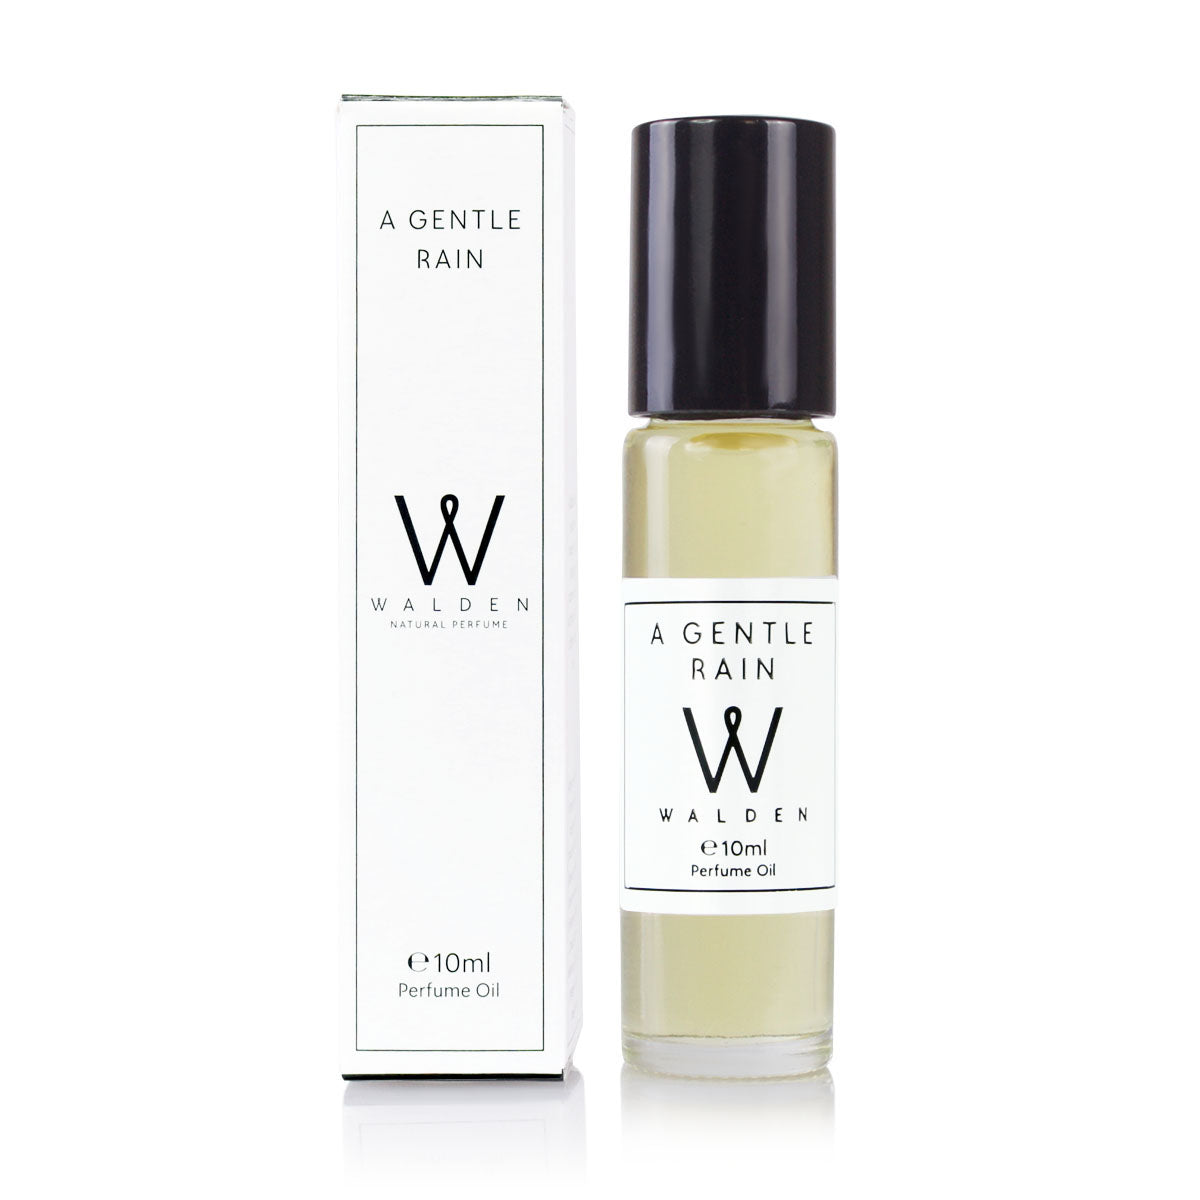 'A Gentle Rain' Perfume Oil 10ml